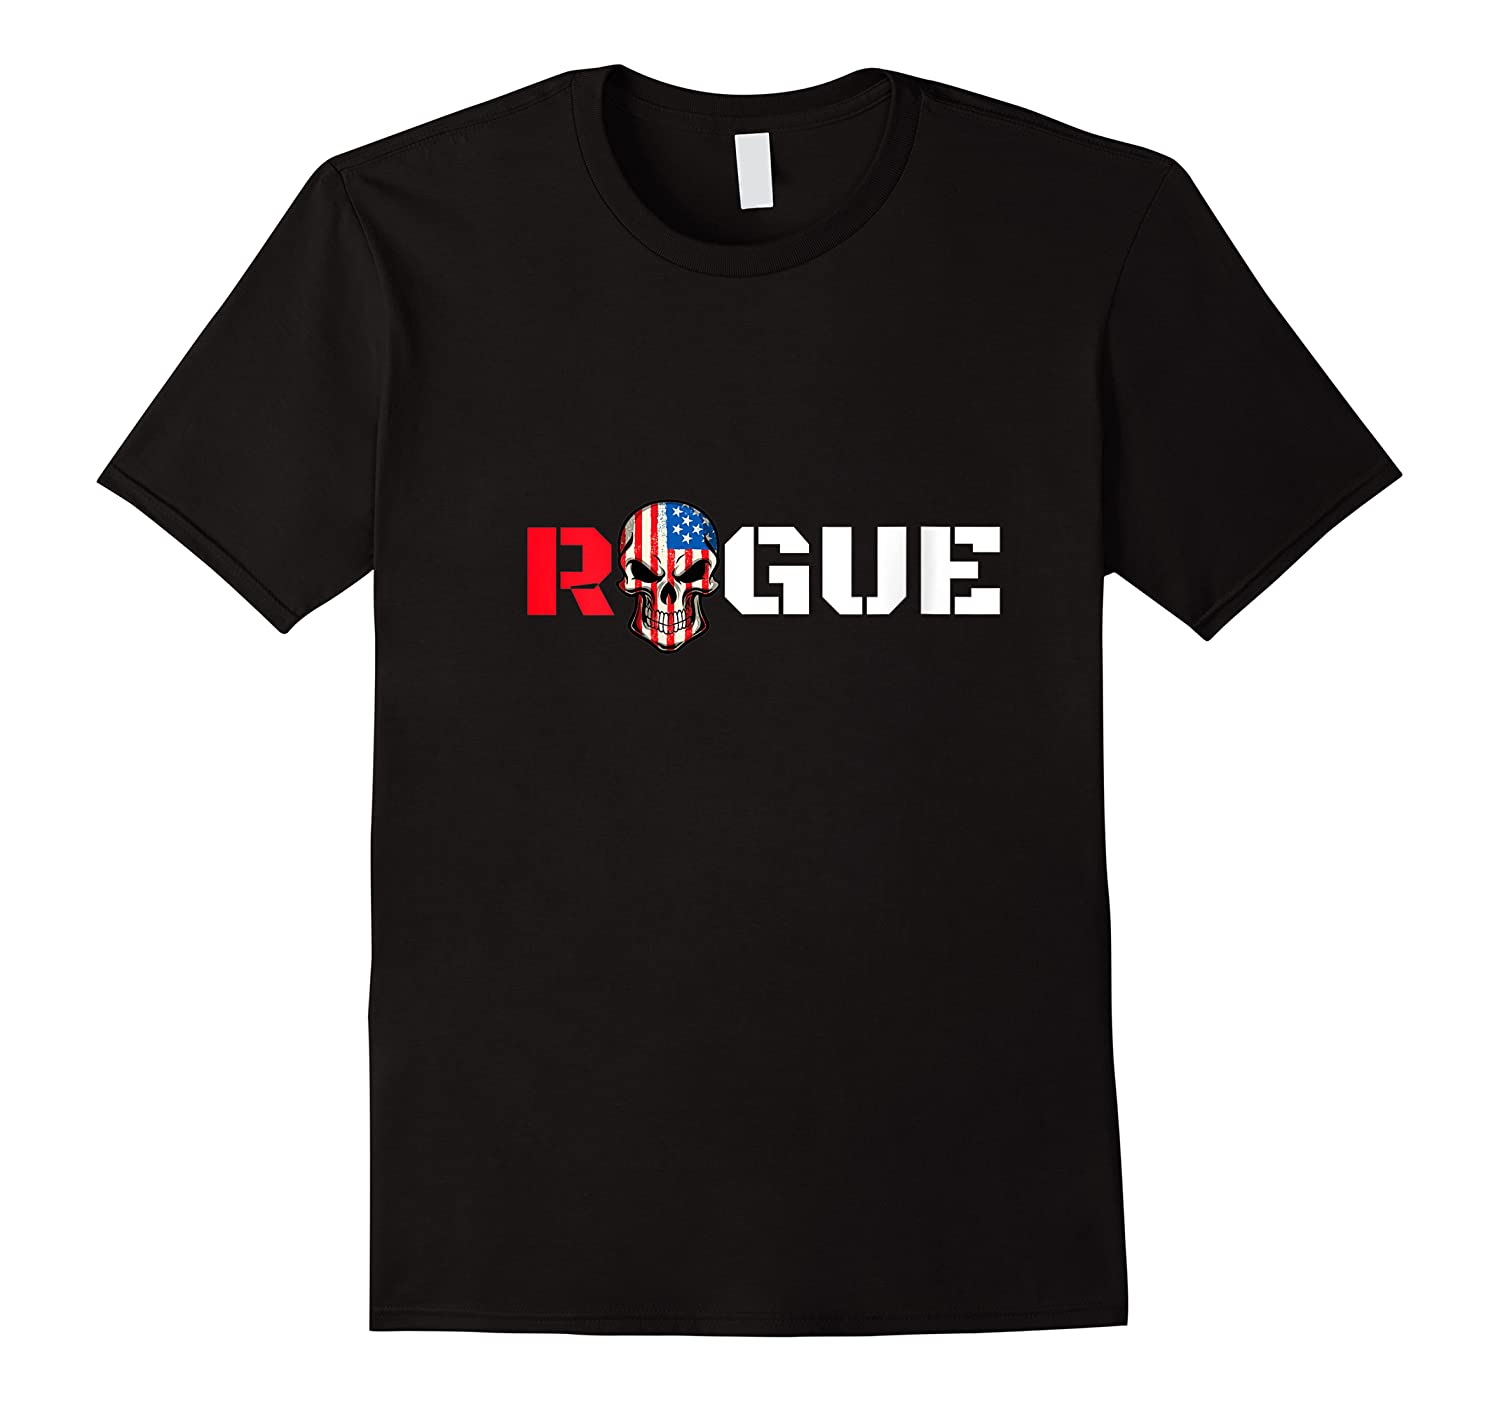 Rogue Life Armed Forces Military Gaming Gym Bad Boy Tee Army T-shirt